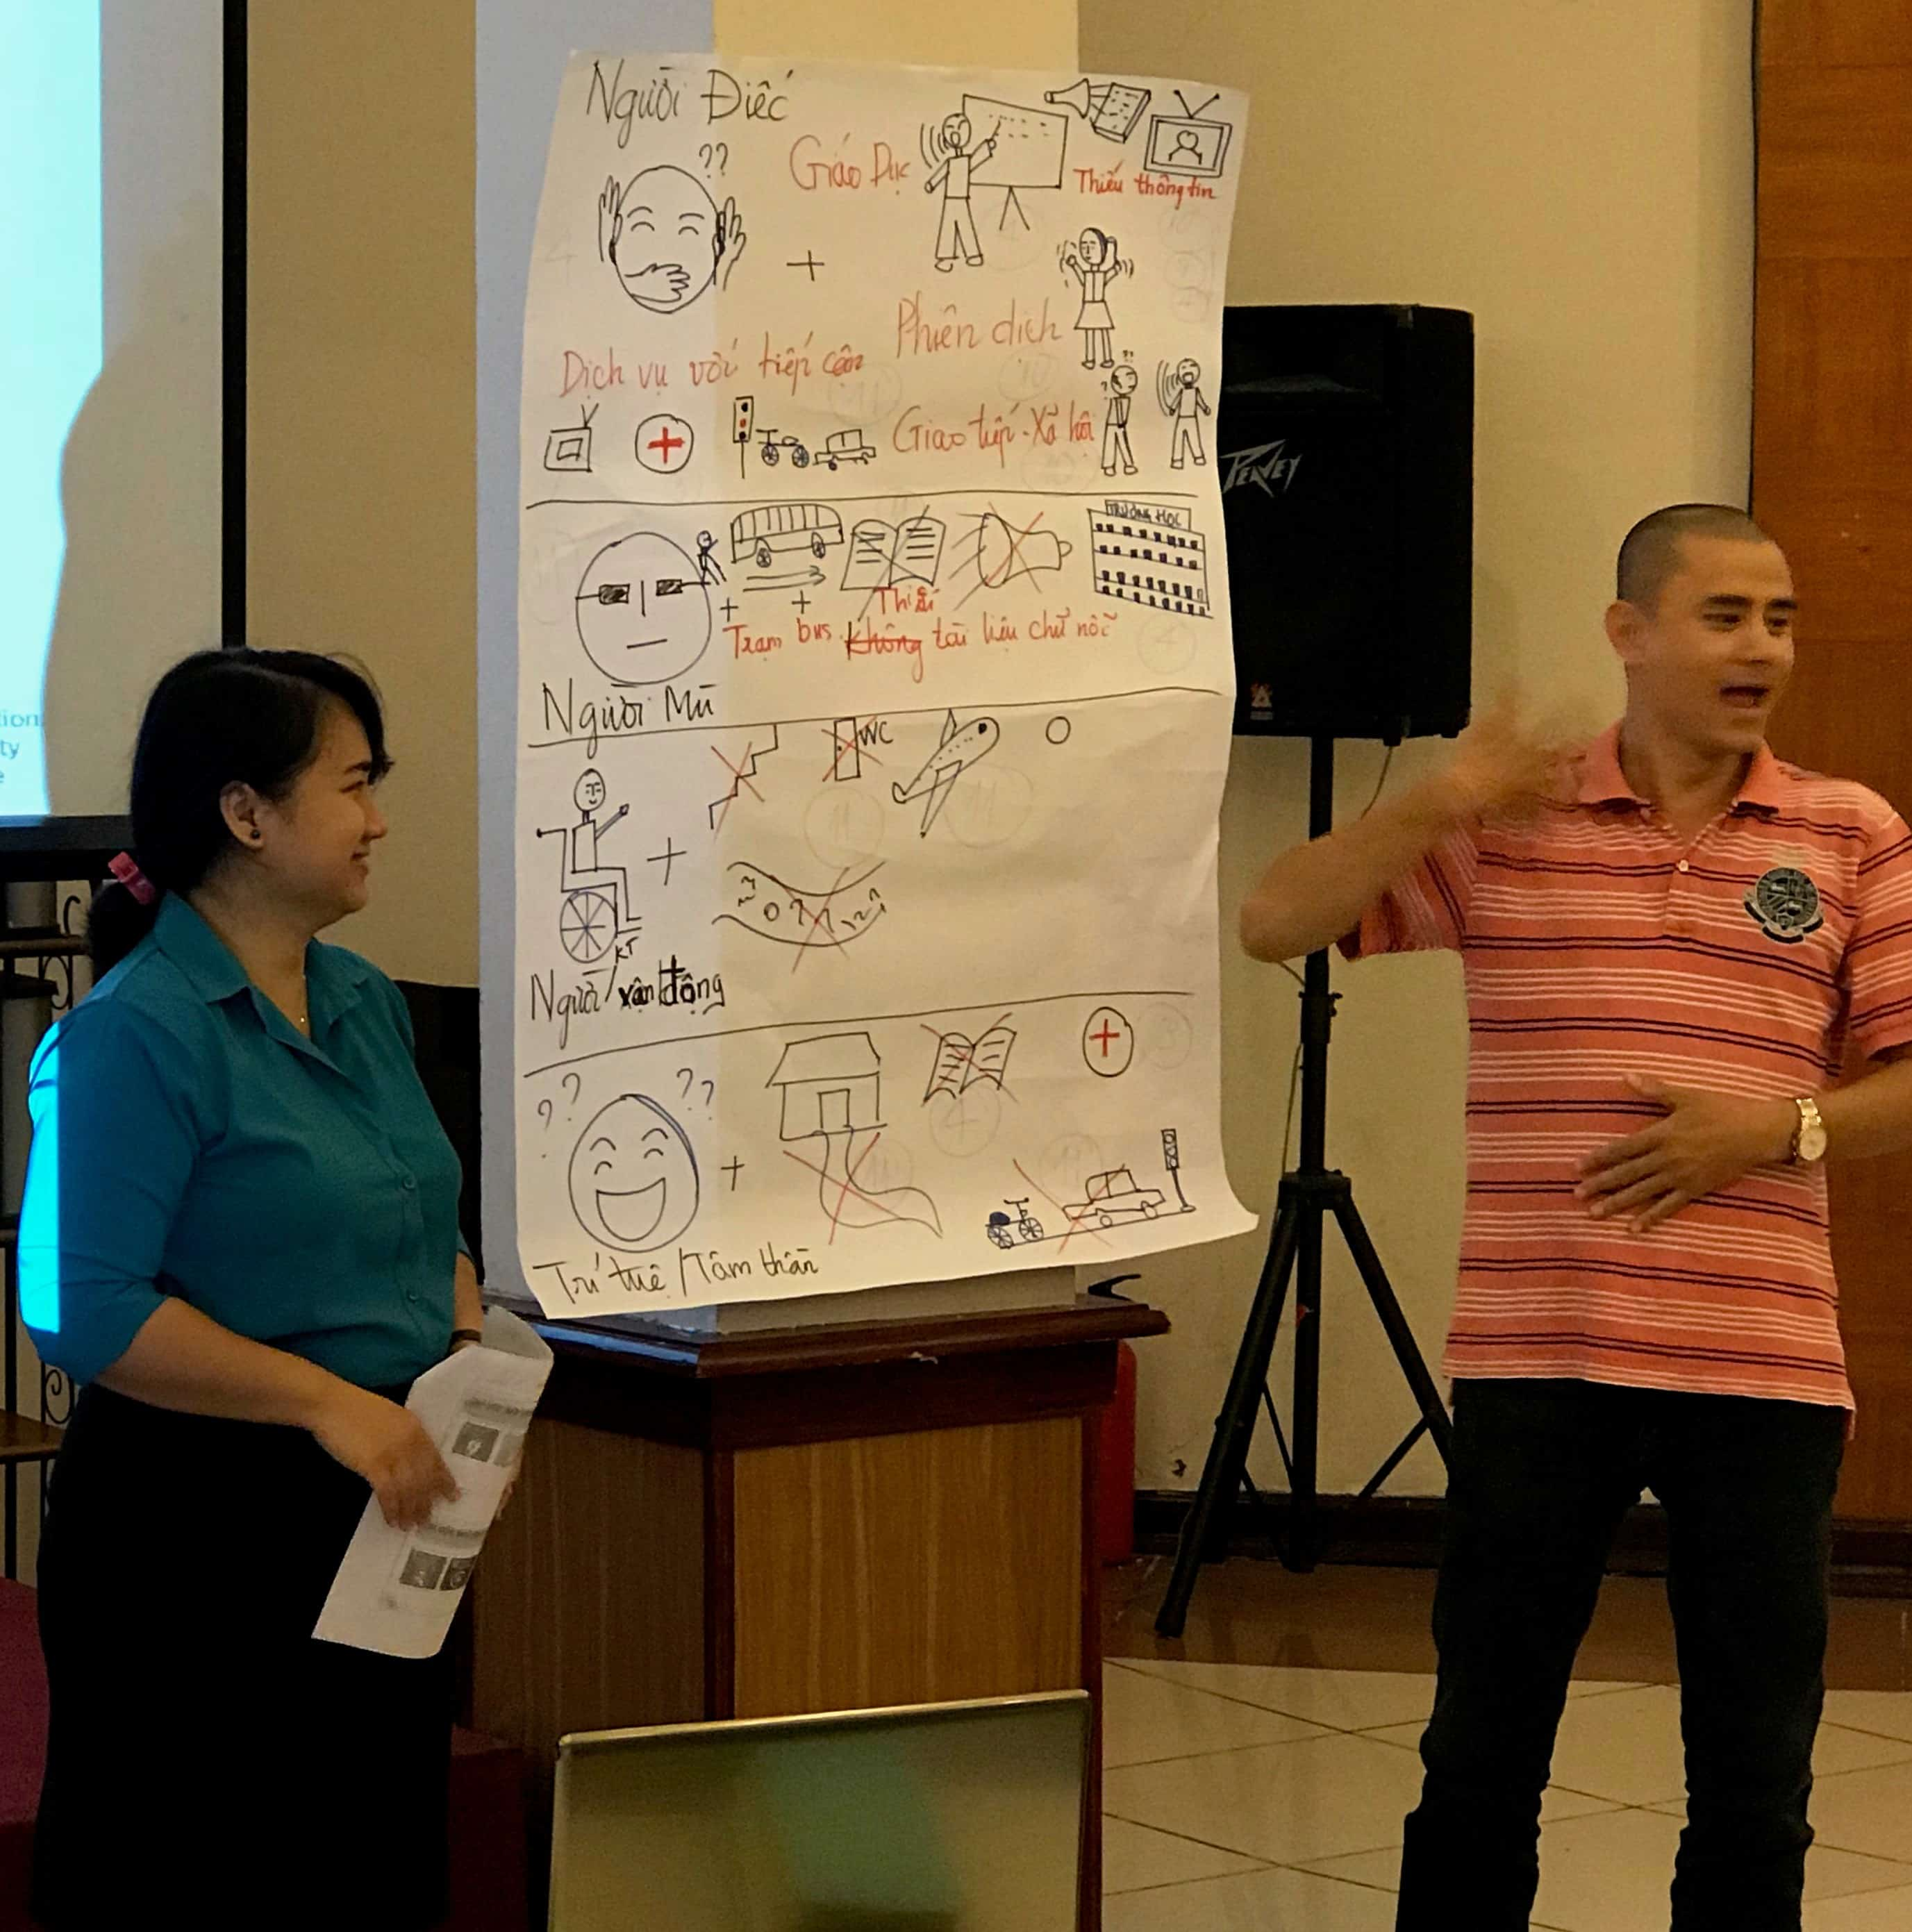 A woman and a man stand next to a sheet of flip chart paper that is filled with drawings and a few words written in Vietnamese and English. The man is signing to people off camera, as the woman looks on.